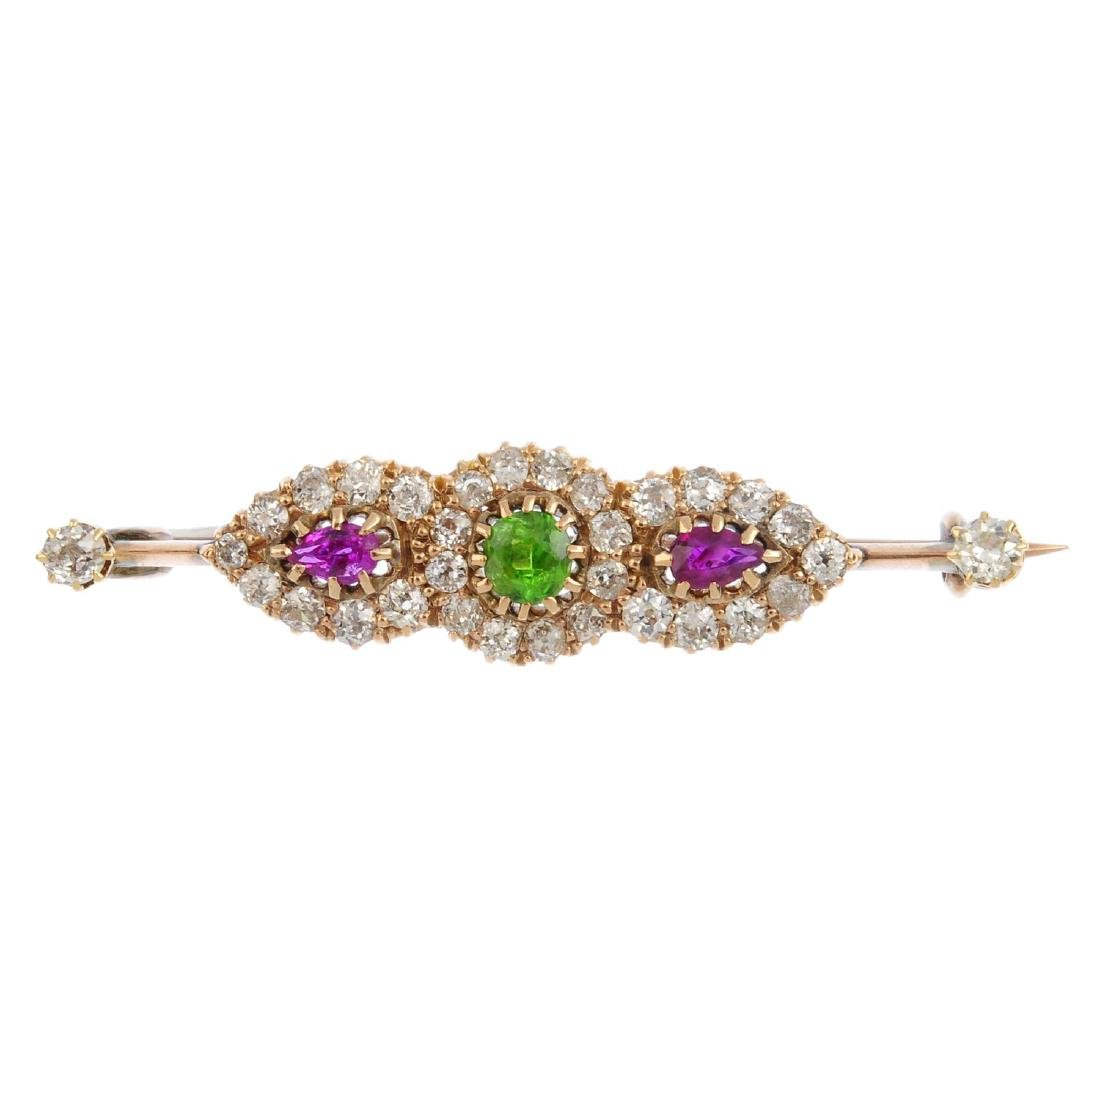 An early 20th century gold diamond and gem-set brooch.